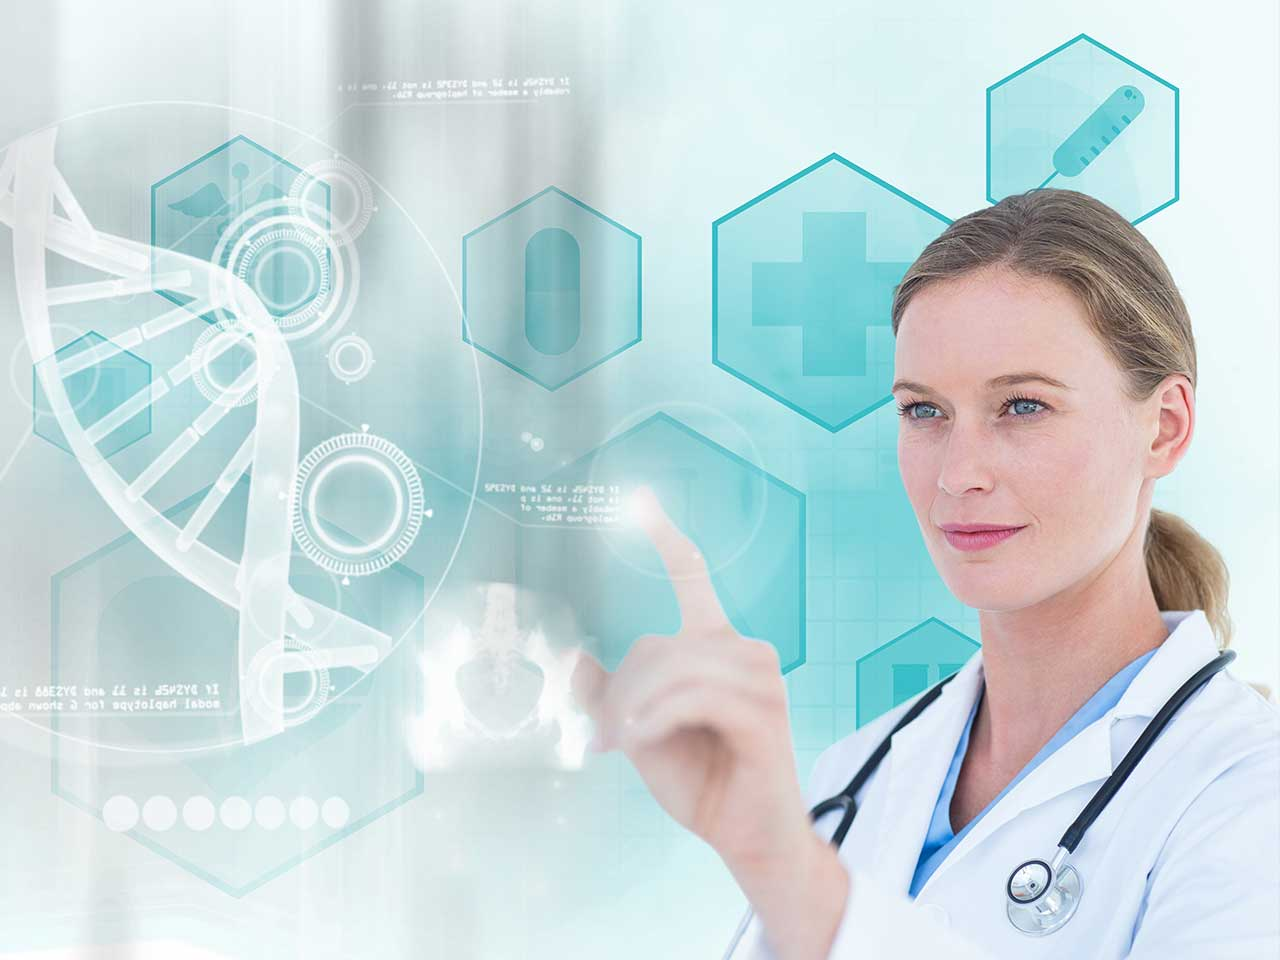 female doctor pointing her finger in a high-tech screen